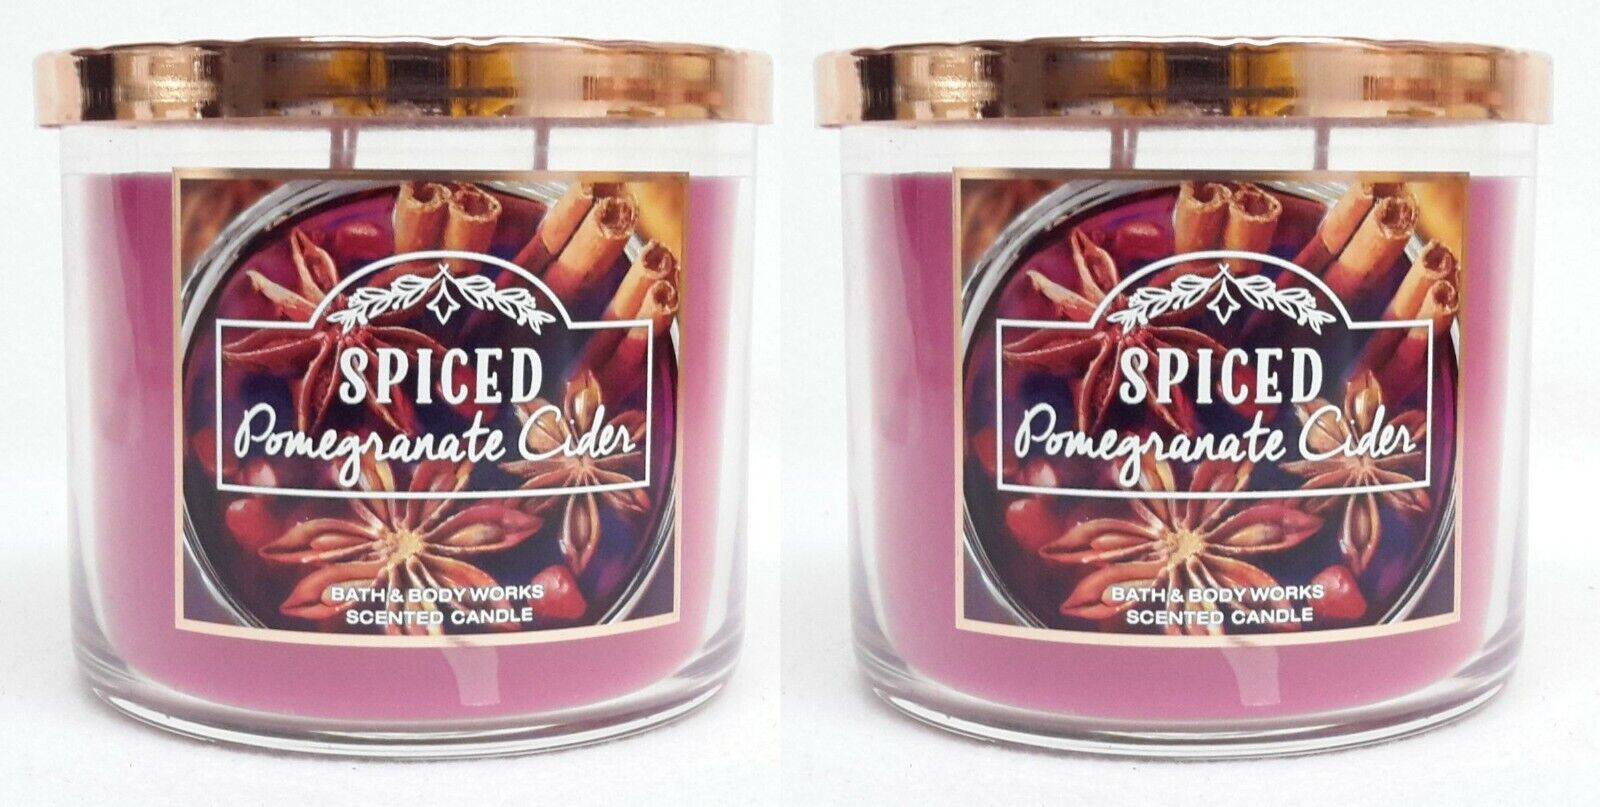 2 Bath & Body Works SPICED POMEGRANATE CIDER 3-Wick Scented Wax Candle 14.5 oz